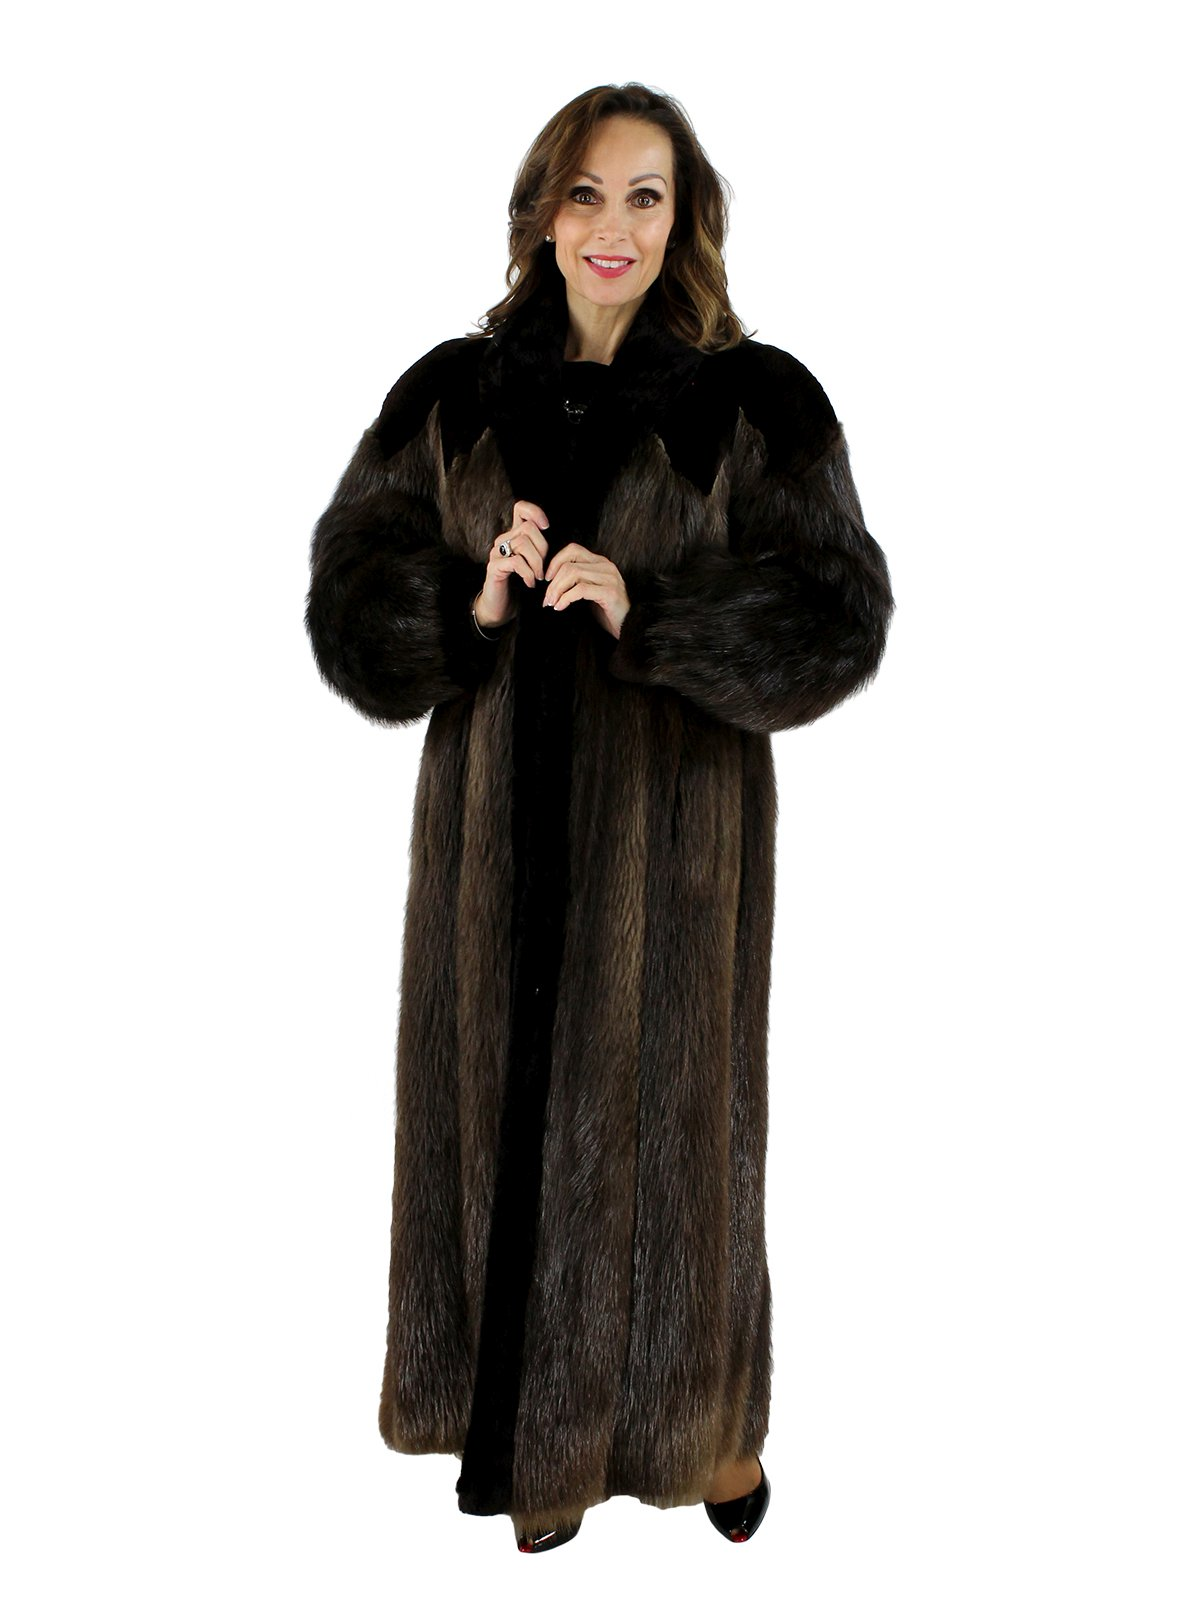 0f5fe1b60 Long Hair Beaver Fur Coat w/ Sheared Beaver Trim - Women's Large ...